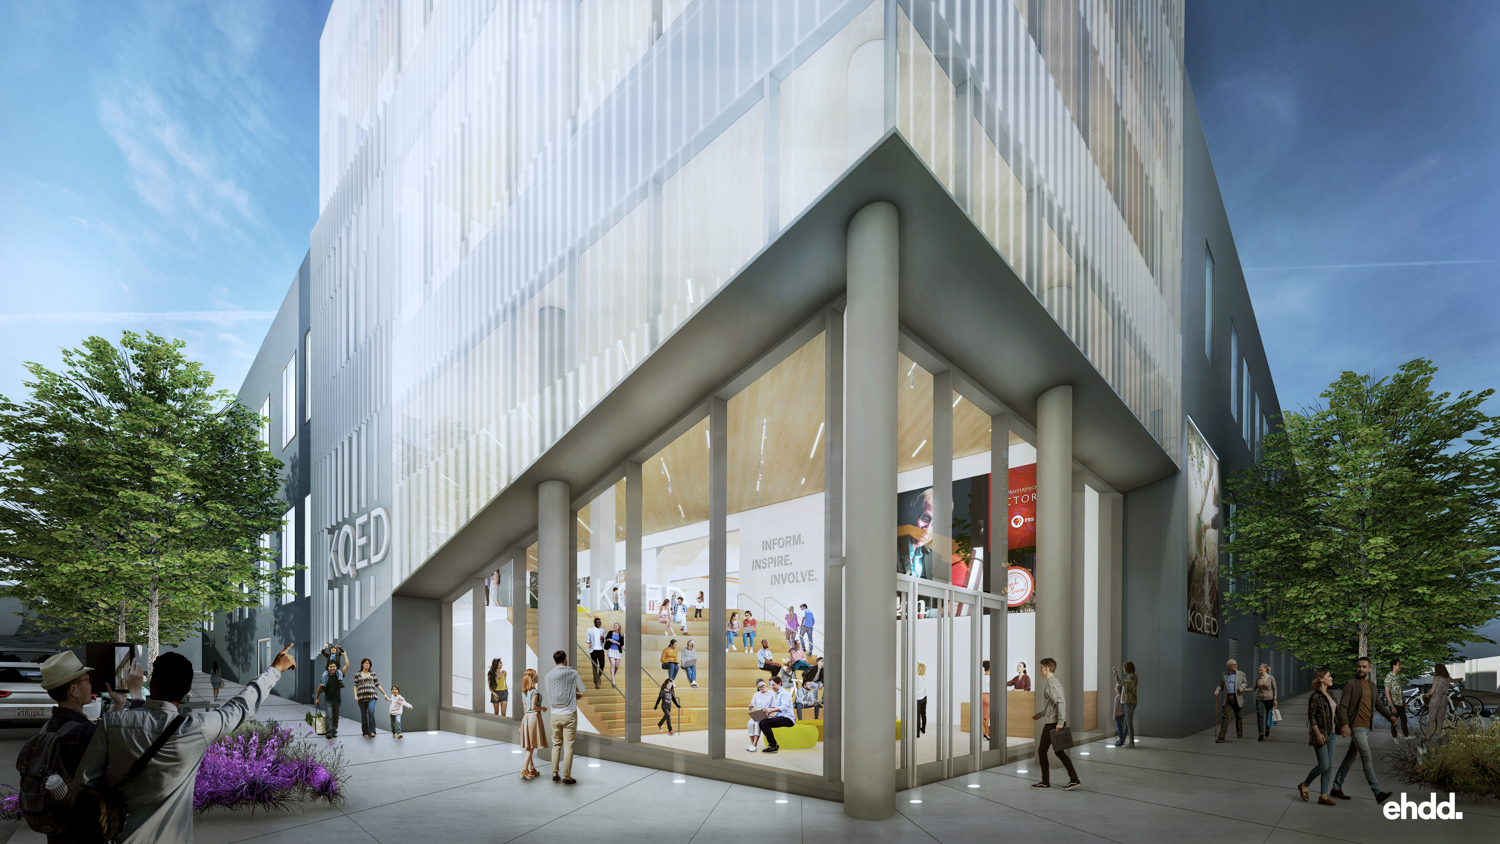 The glassy, dynamic façade of the new KQED Headquarters reflects KQED's commitment to transparency. The new design moved the entrance to the corner of Bryant and Mariposa Streets for more visibility and ease of accessibility. Rendering courtesy of EHDD Architects.